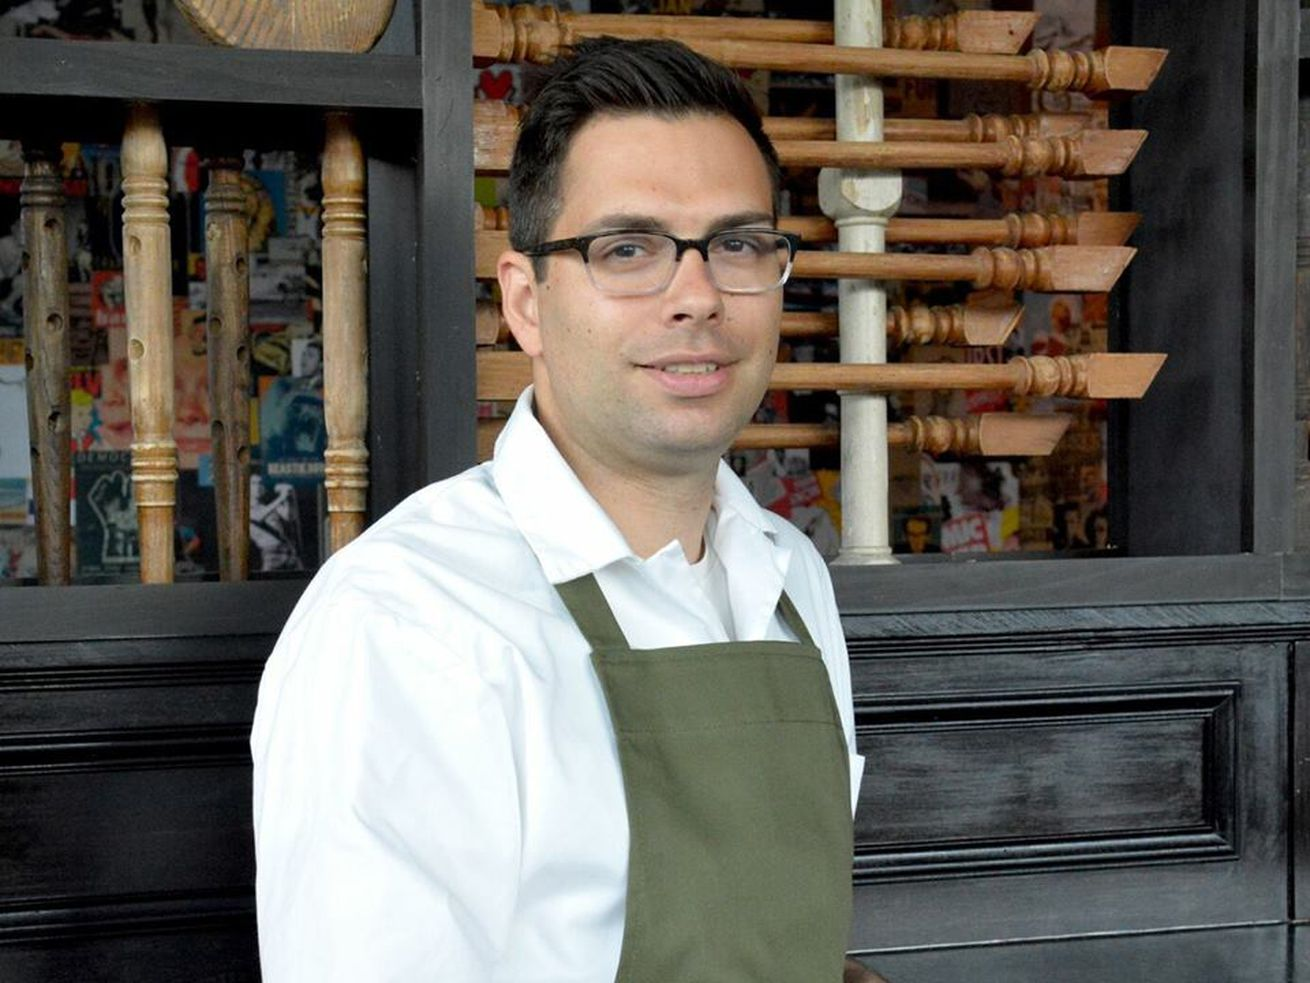 Hazel founder and critically acclaimed chef Rob Rubba.